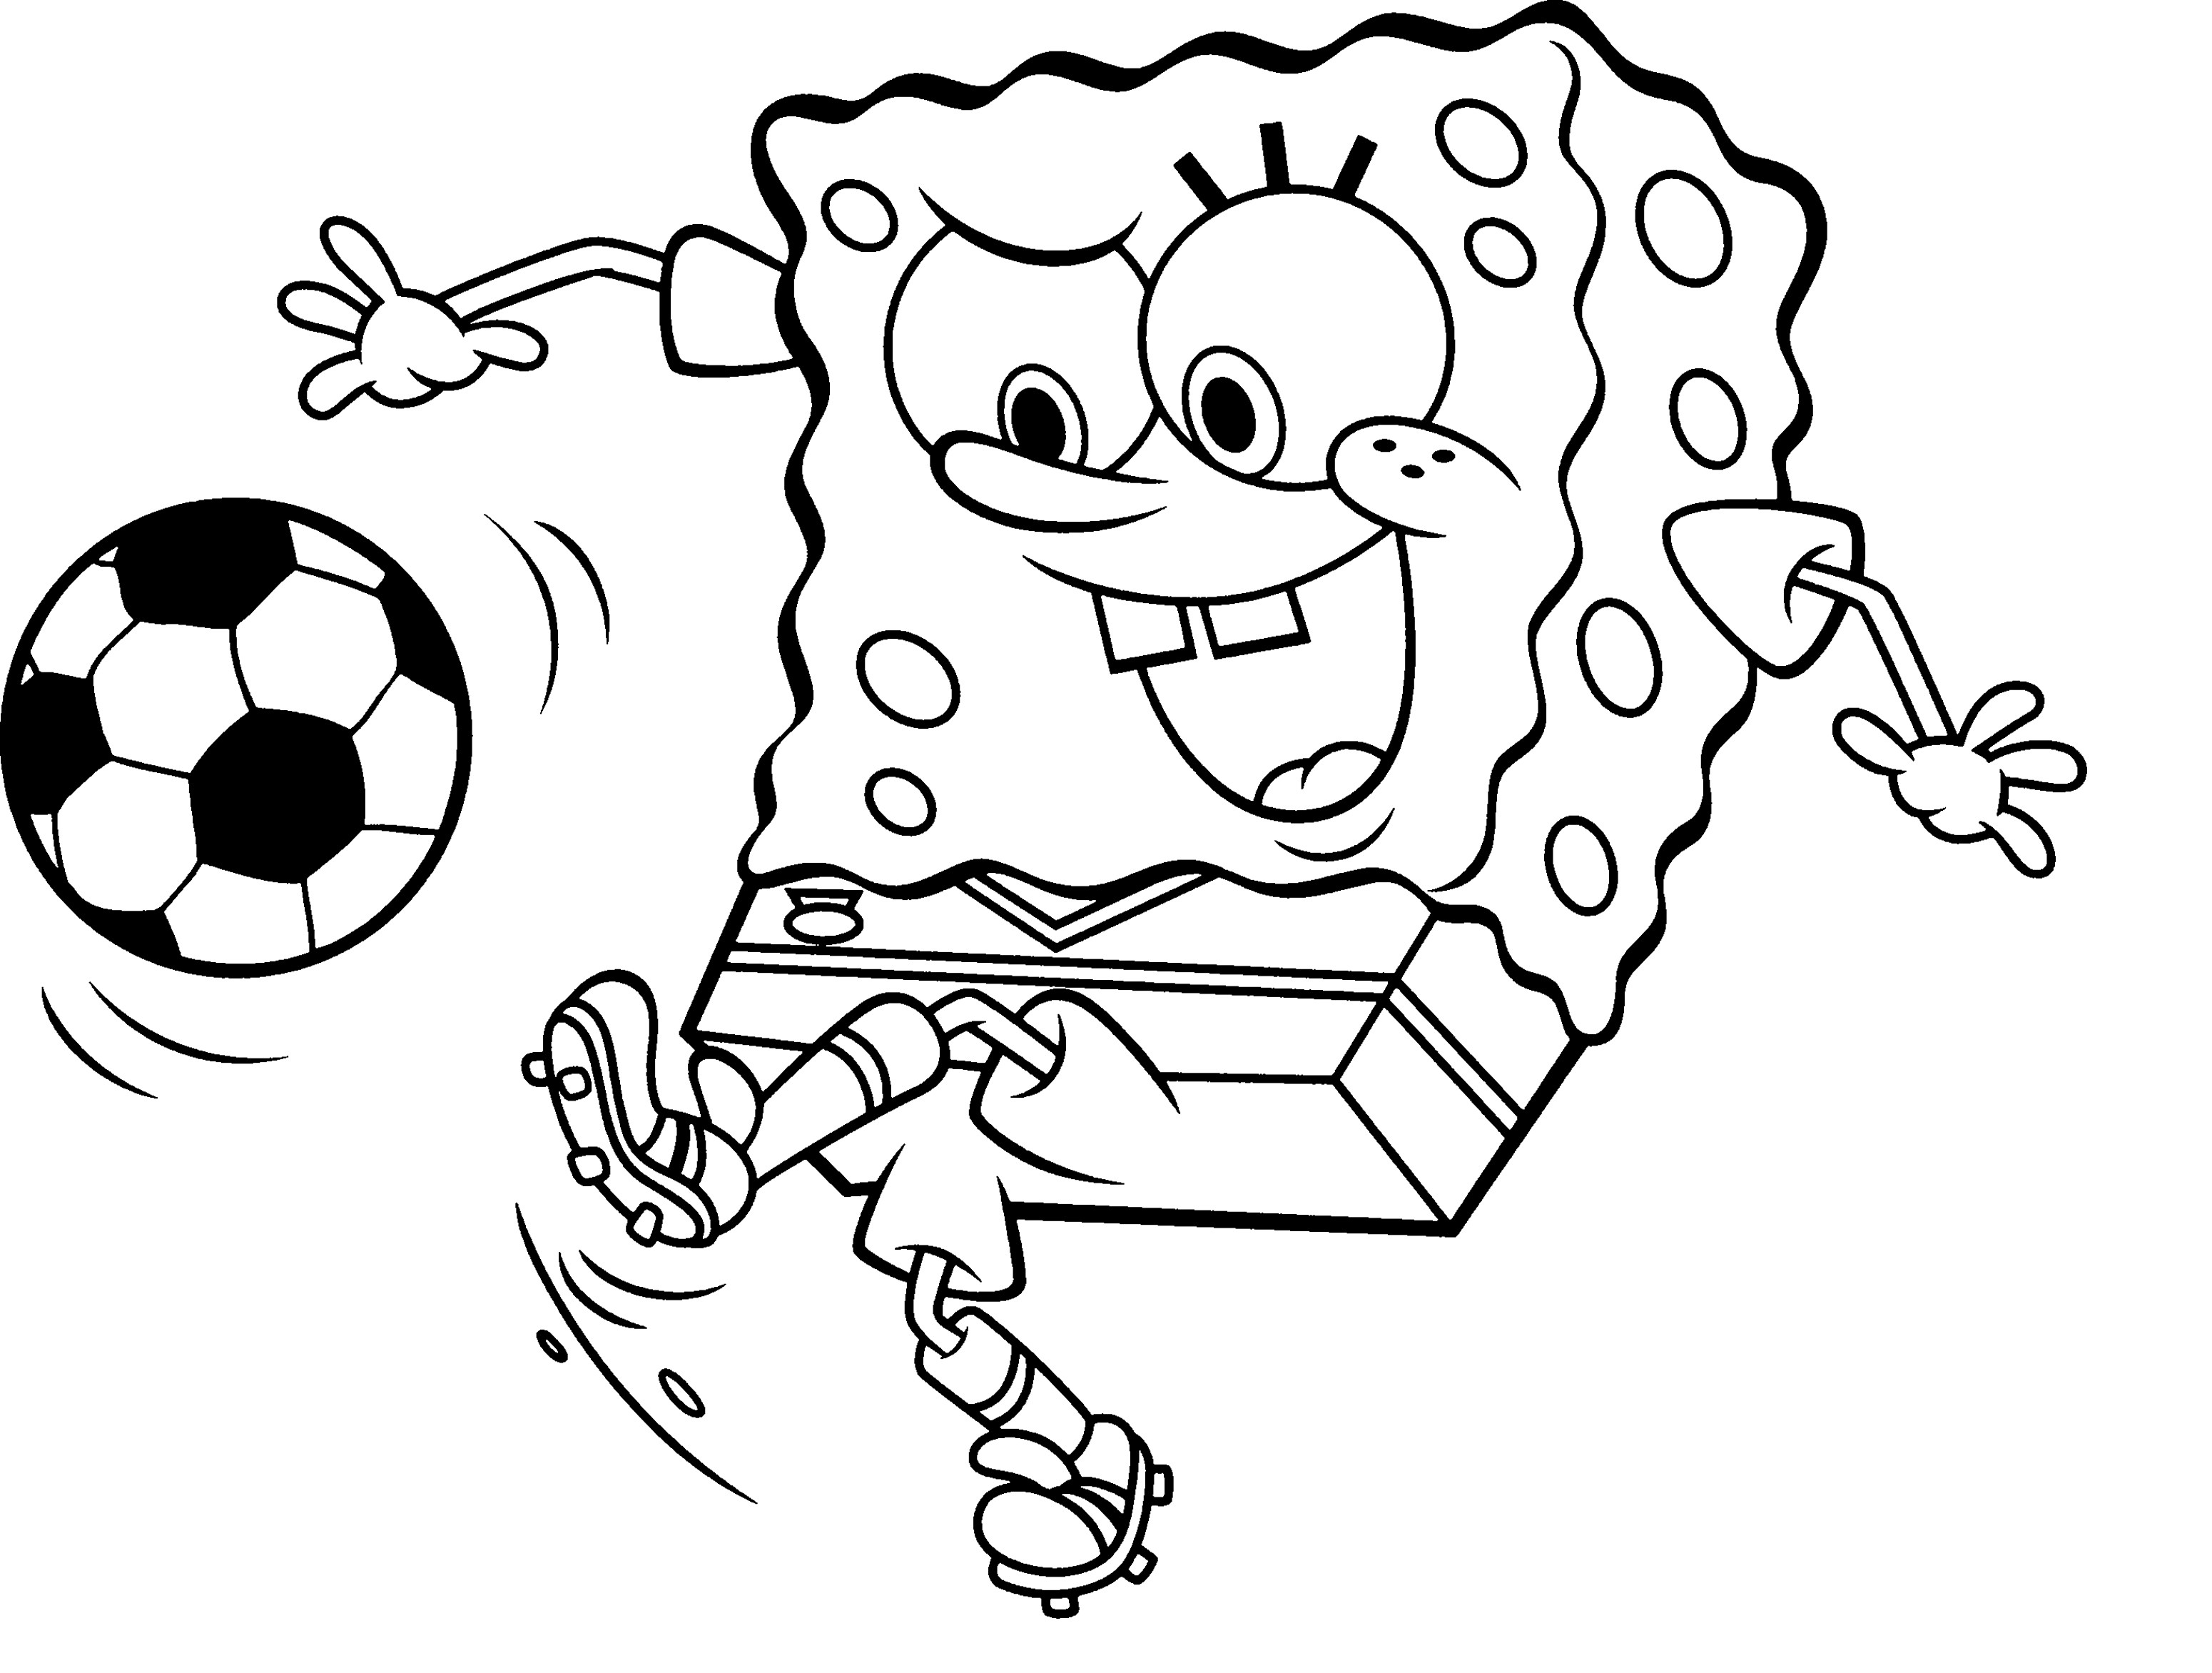 3100x2344 Rugby Sport Coloring Page For Kids Inspirational Sports Balls